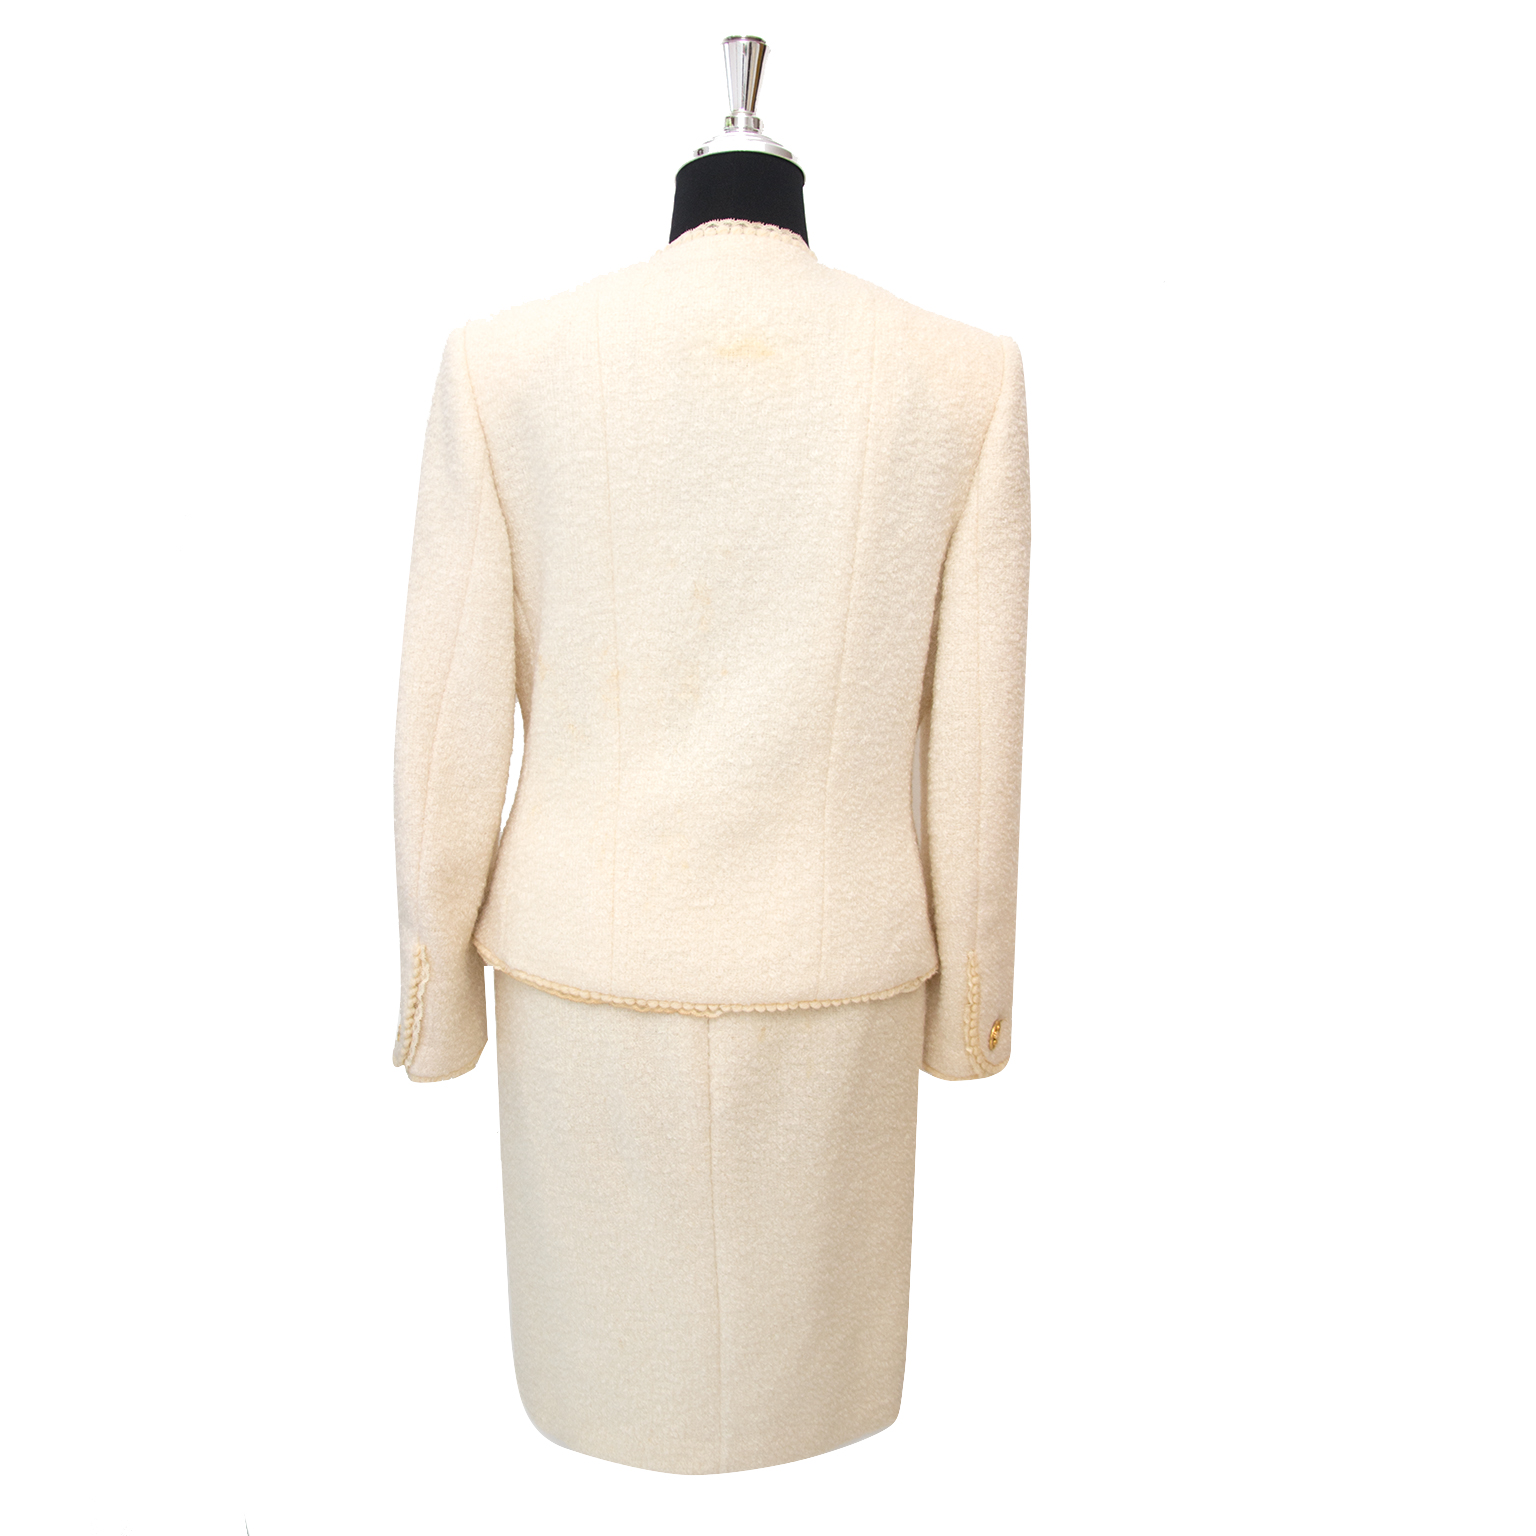 Looking for a Chanel Beige Bouclé Tailleur Set?